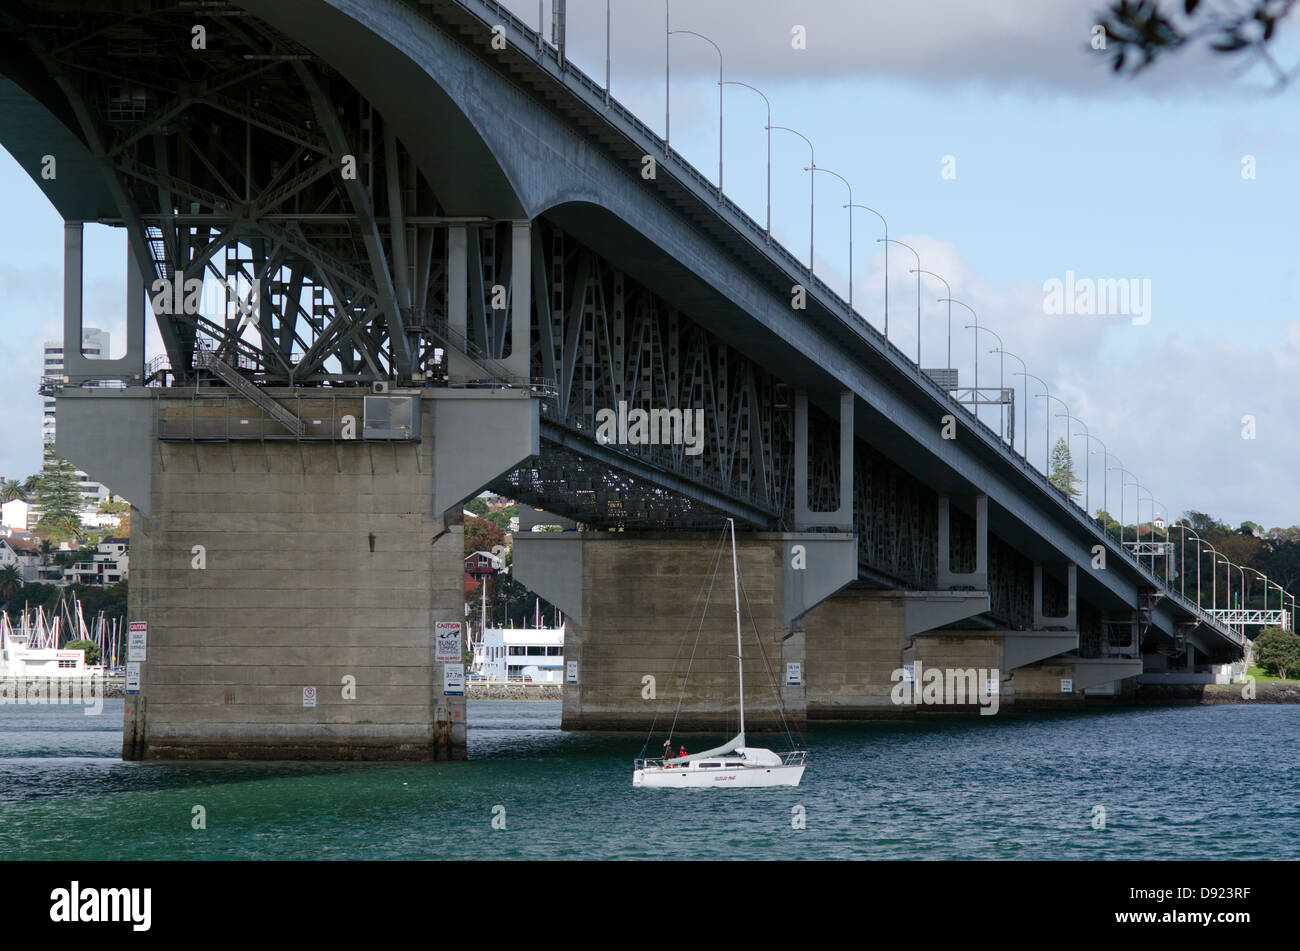 Sail boat under Auckland Harbour Bridge, New Zealand - Stock Image